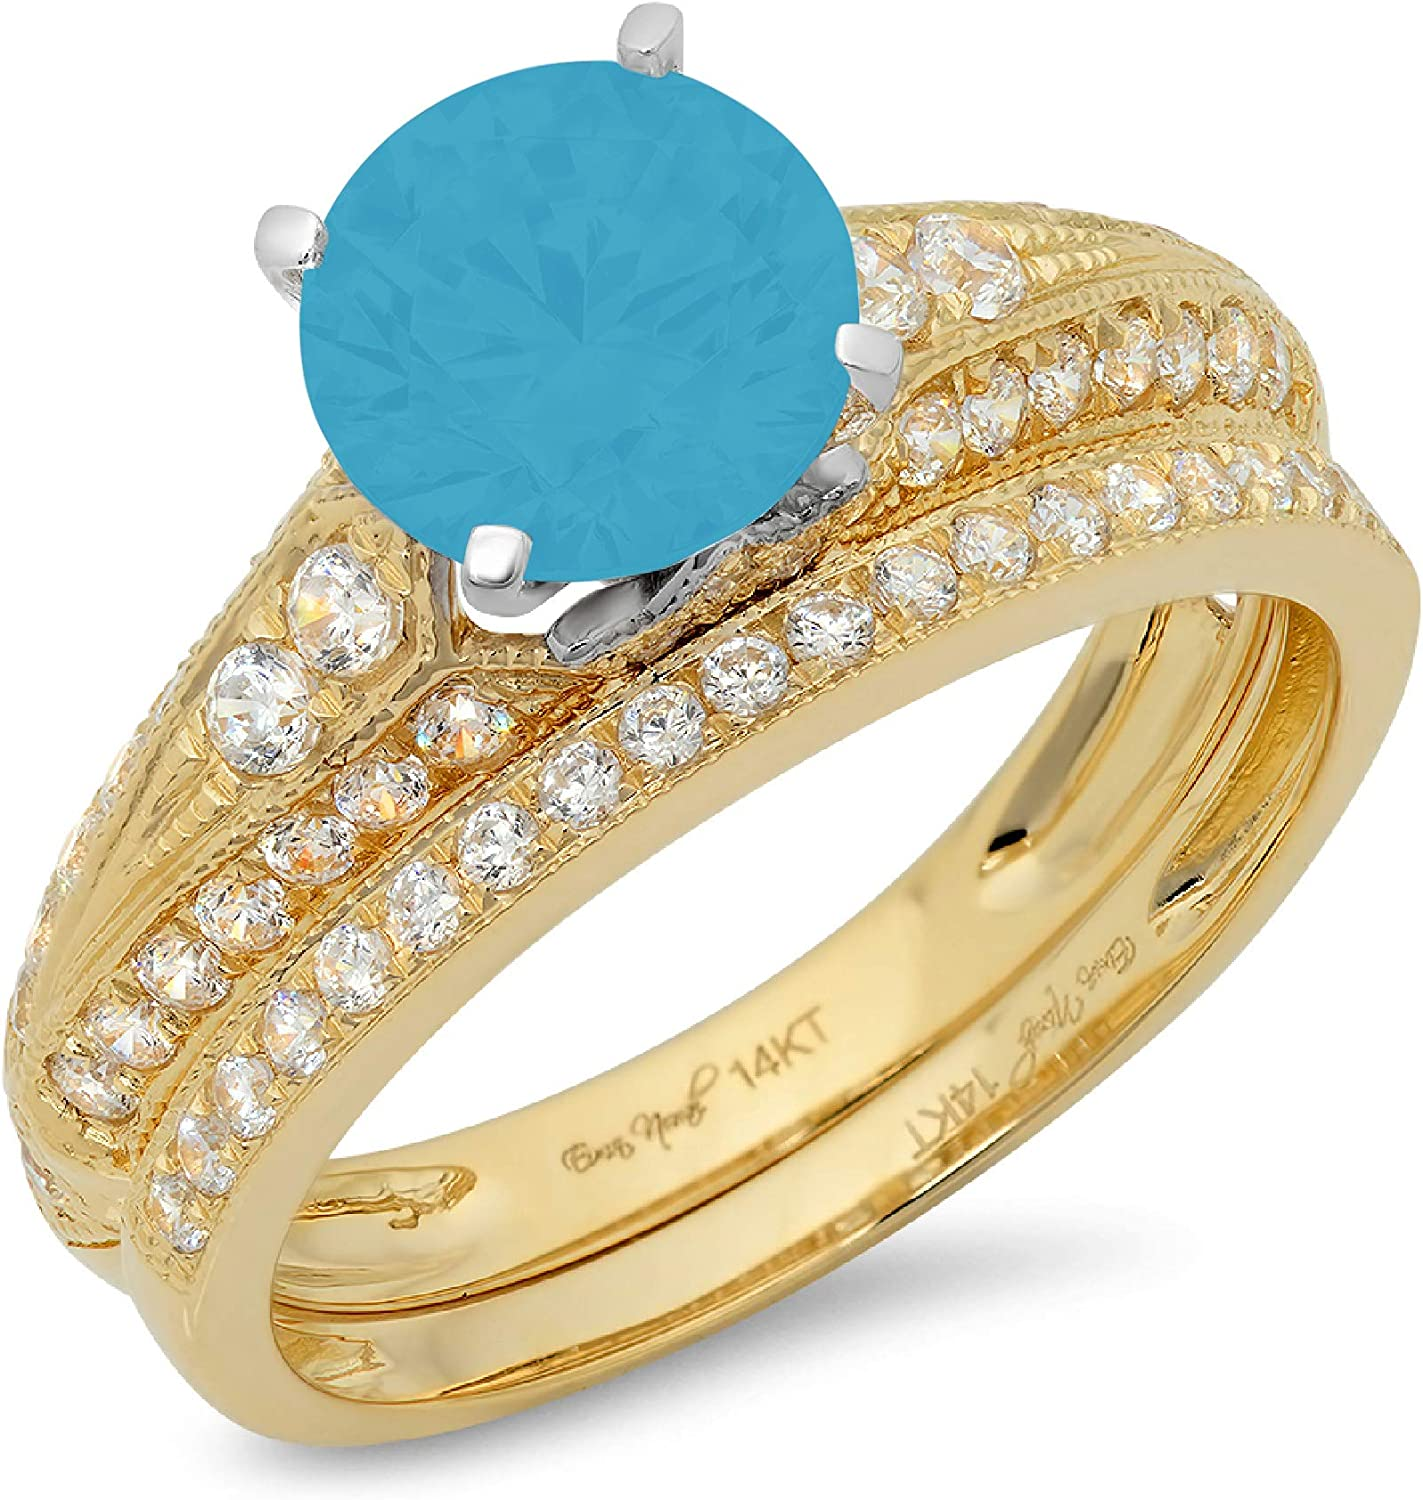 2.04ct Round Cut Pave Solitaire with Accent Ideal Flawless Simulated CZ Turquoise Engagement Promise Designer Anniversary Wedding Bridal ring band set 14k 2 Tone Gold